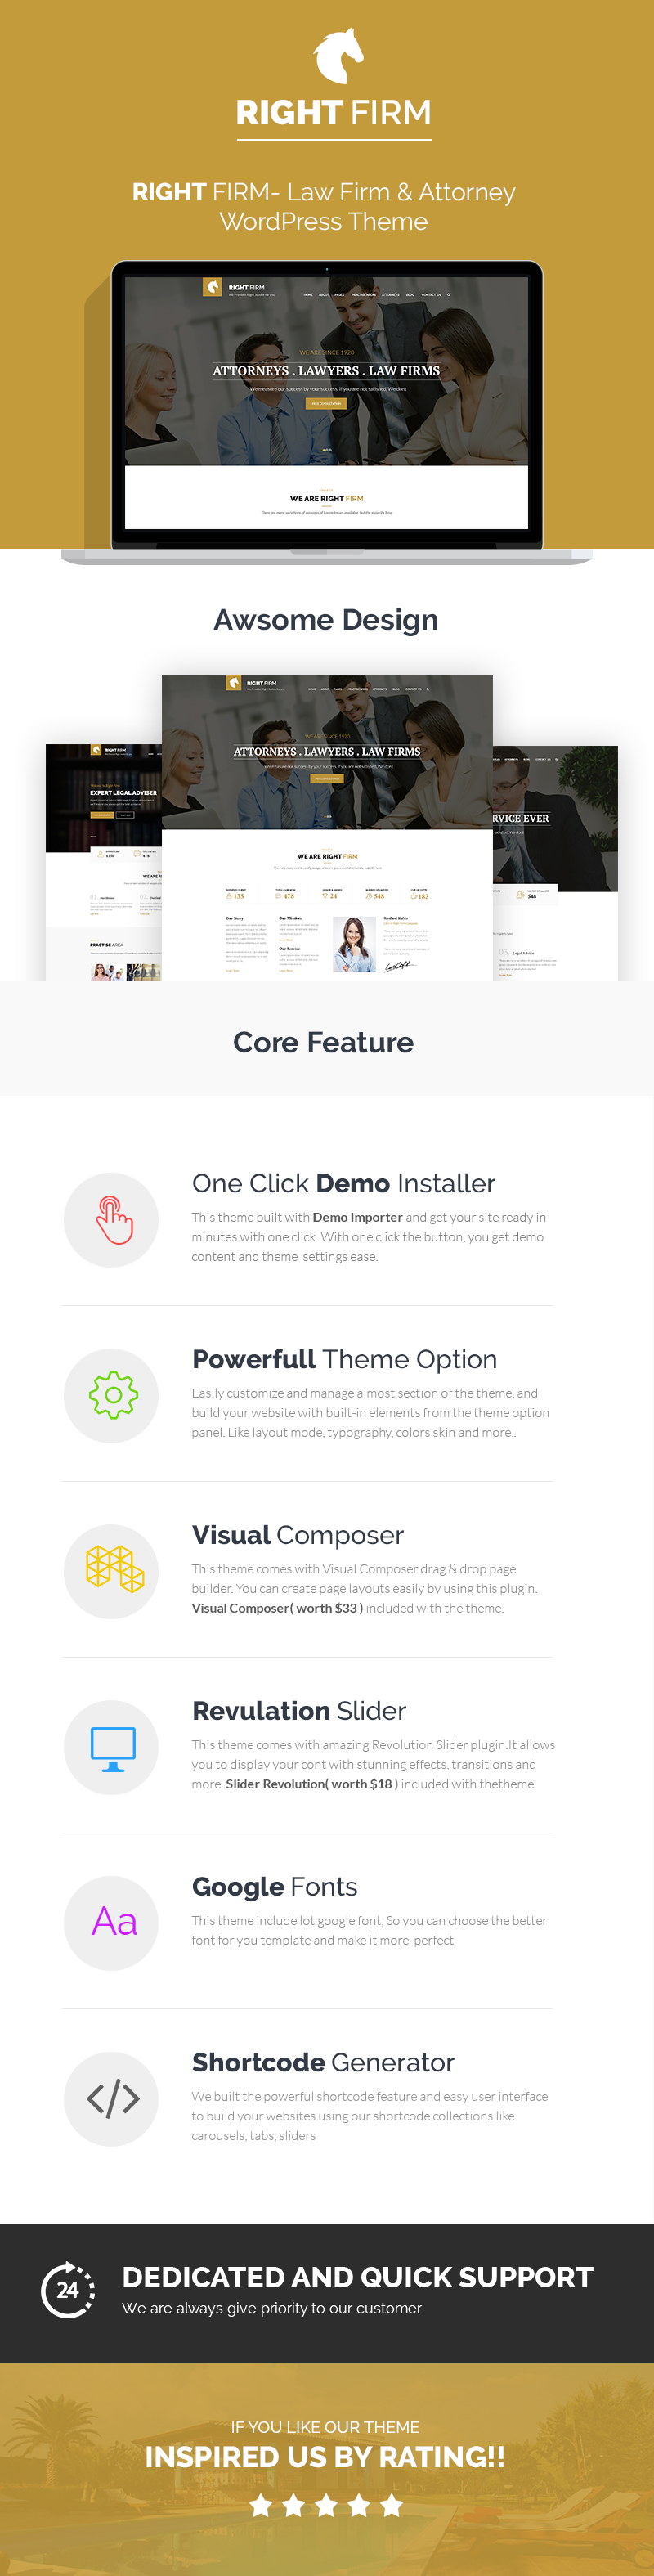 Right Firm- Law Firm WordPress Theme - 1